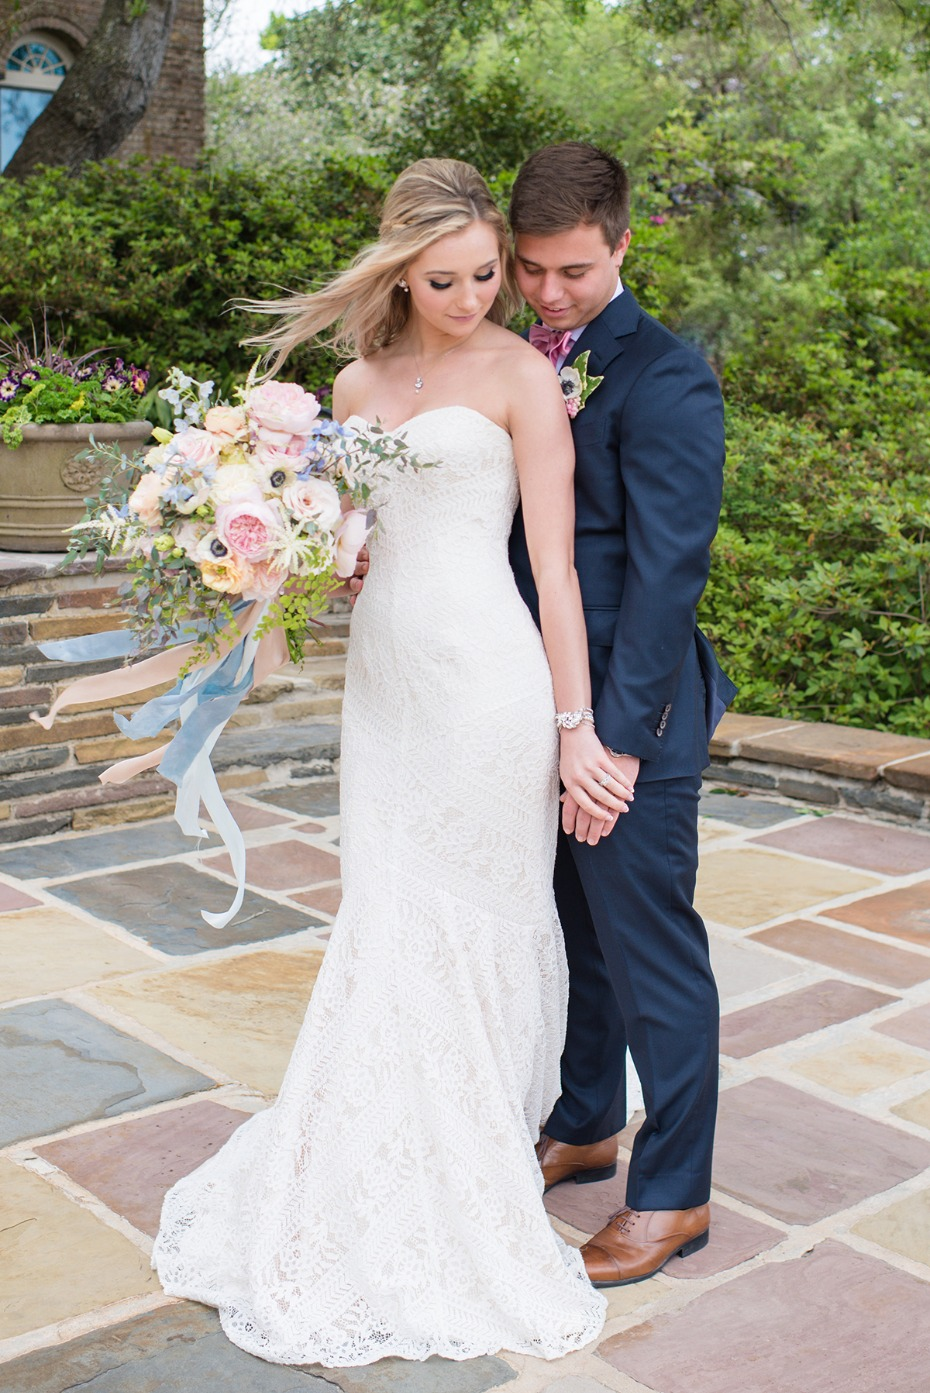 How To Have The Perfect Pastel Summer Wedding